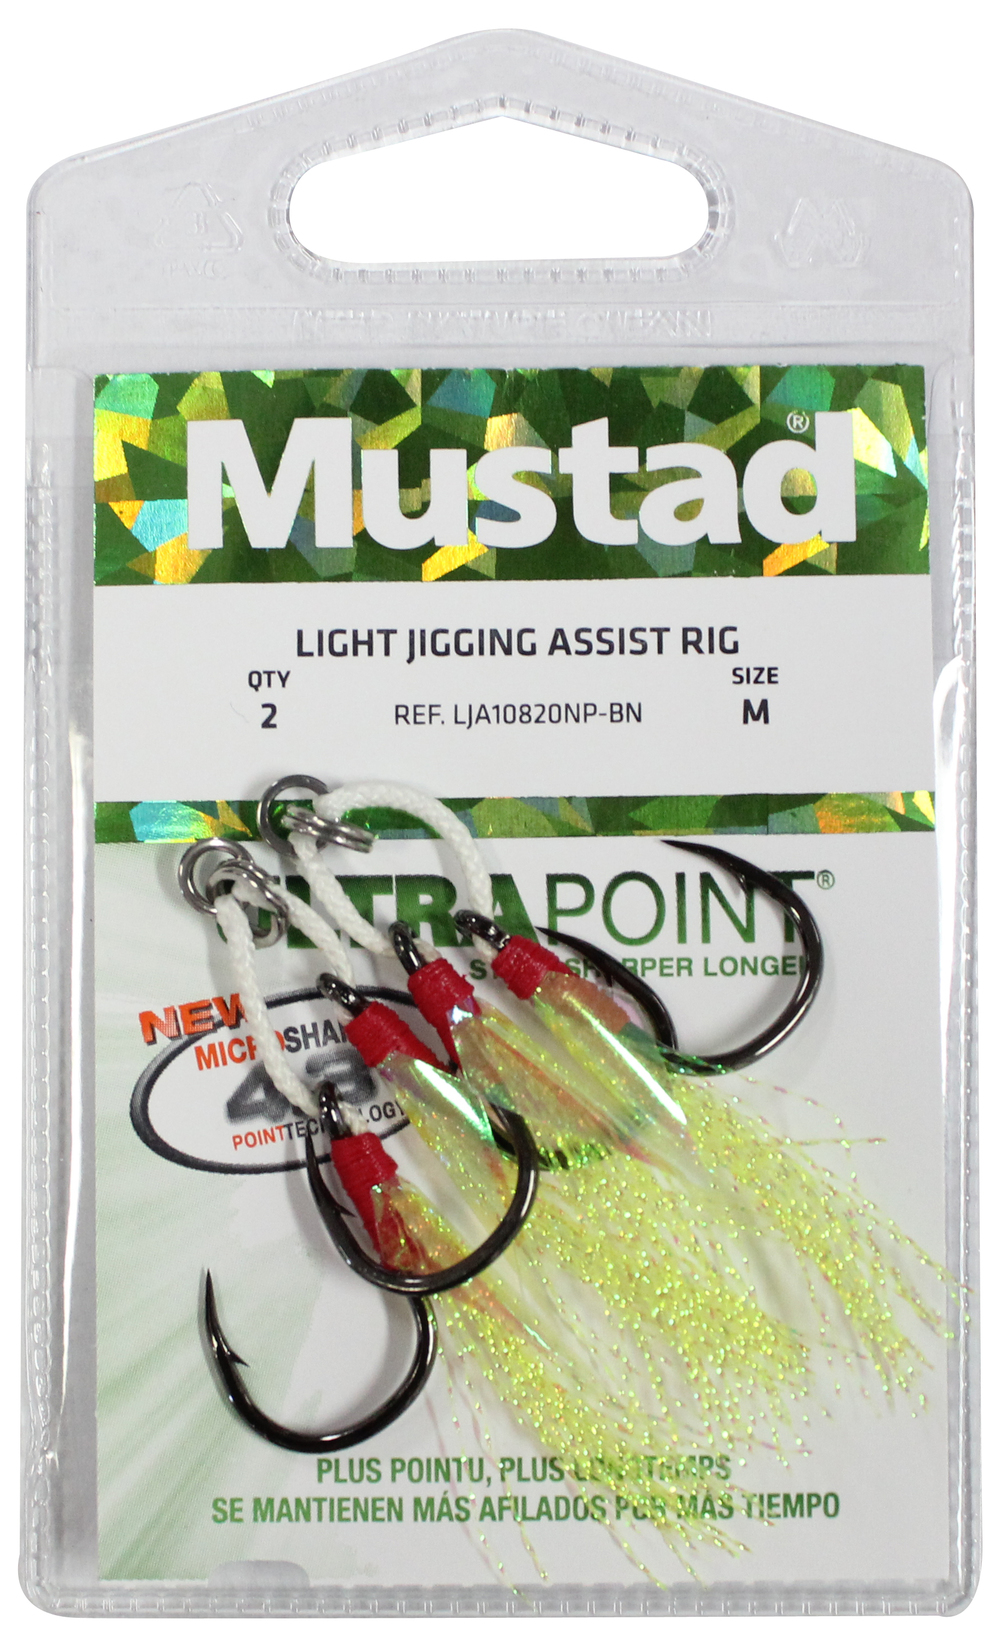 Wilson Fishing Mustad Light Jig Assist Hooks